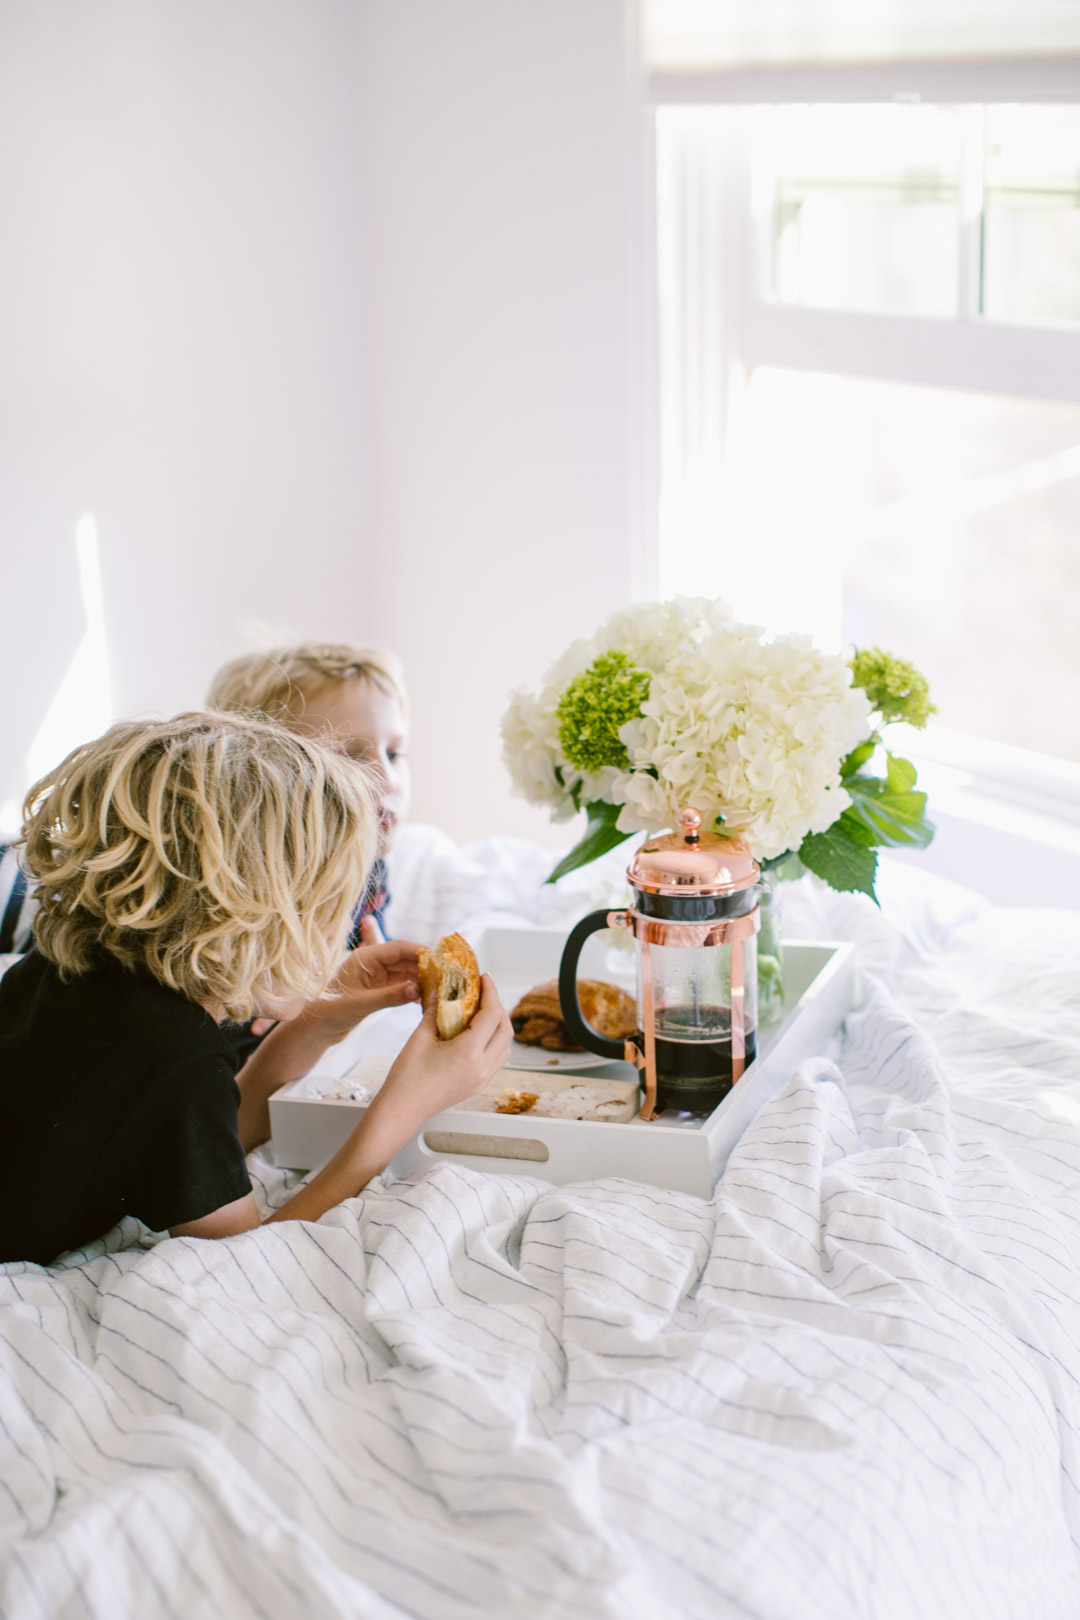 Happy Mama's Day! For us Mamas, there's a simple way to win Mother's Day morning with the fam. Hint: flowers & somethin' a li'l fancy help. Deets inside.